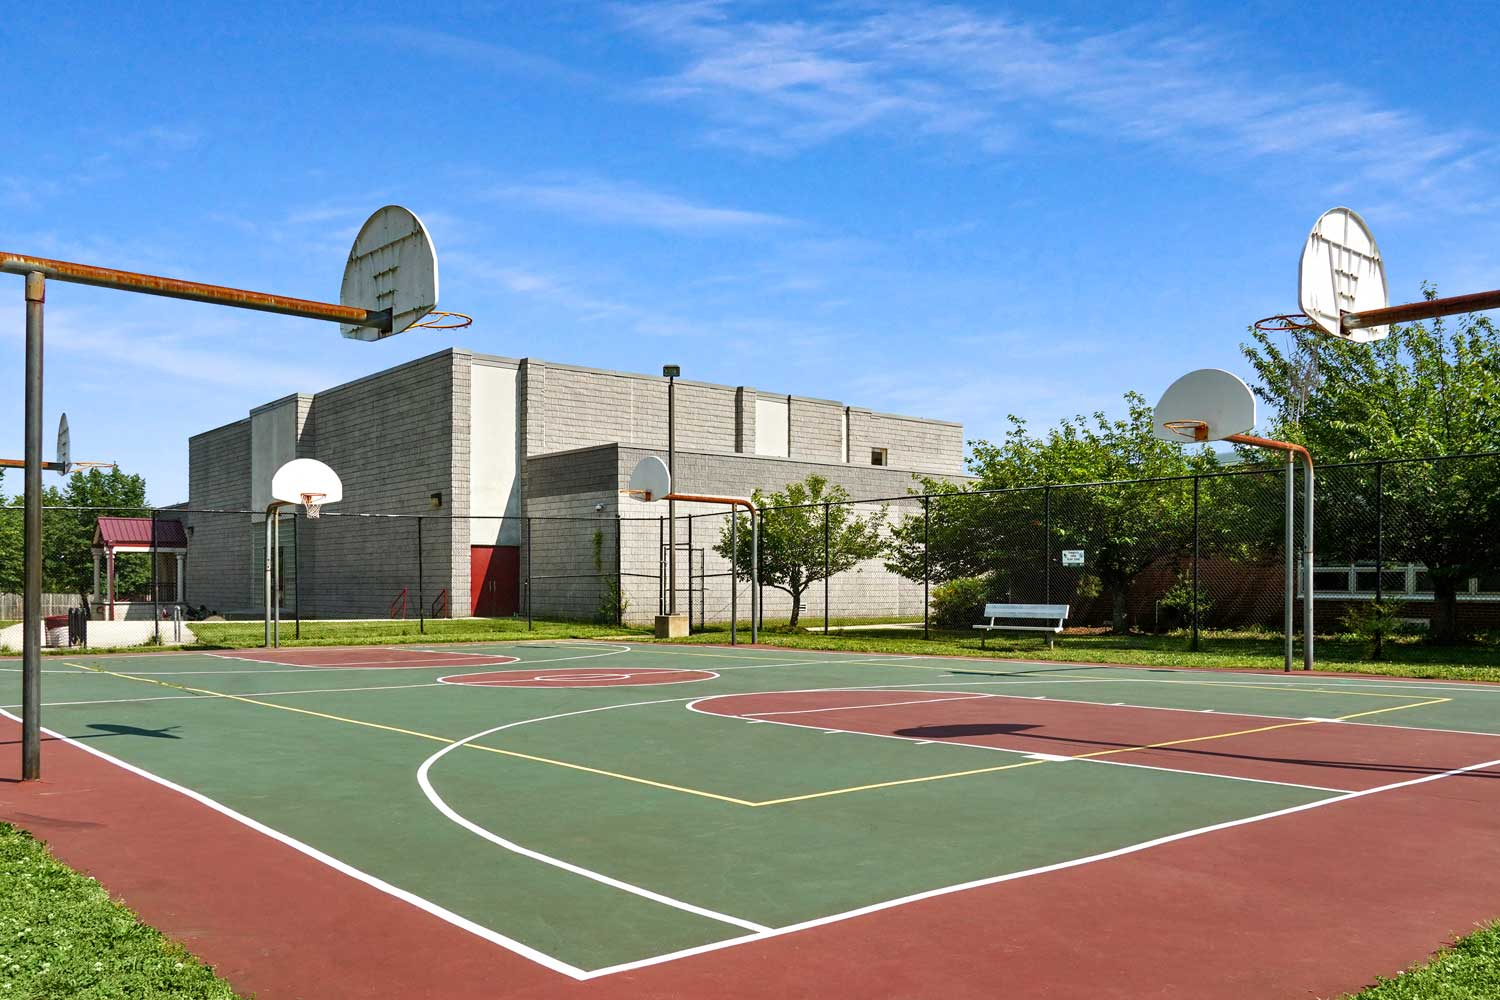 Basketball court 5 minutes from Barcroft Plaza Apartments in Falls Church, VA